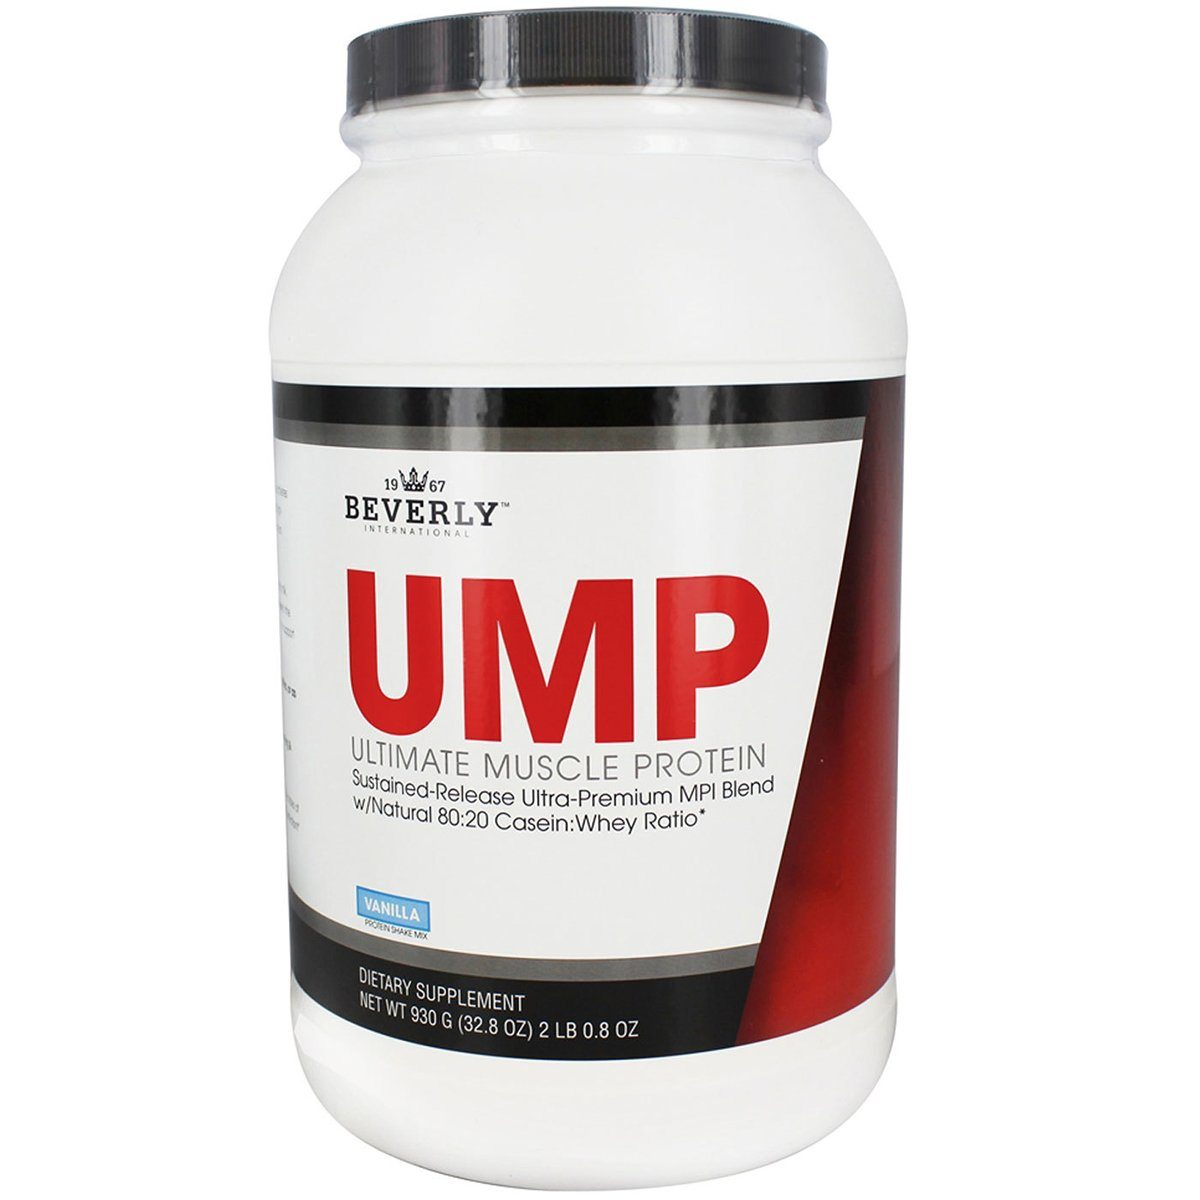 Beverly International Ultimate Muscle Protein 2 lbs Protein Beverly International  (1058002894891)